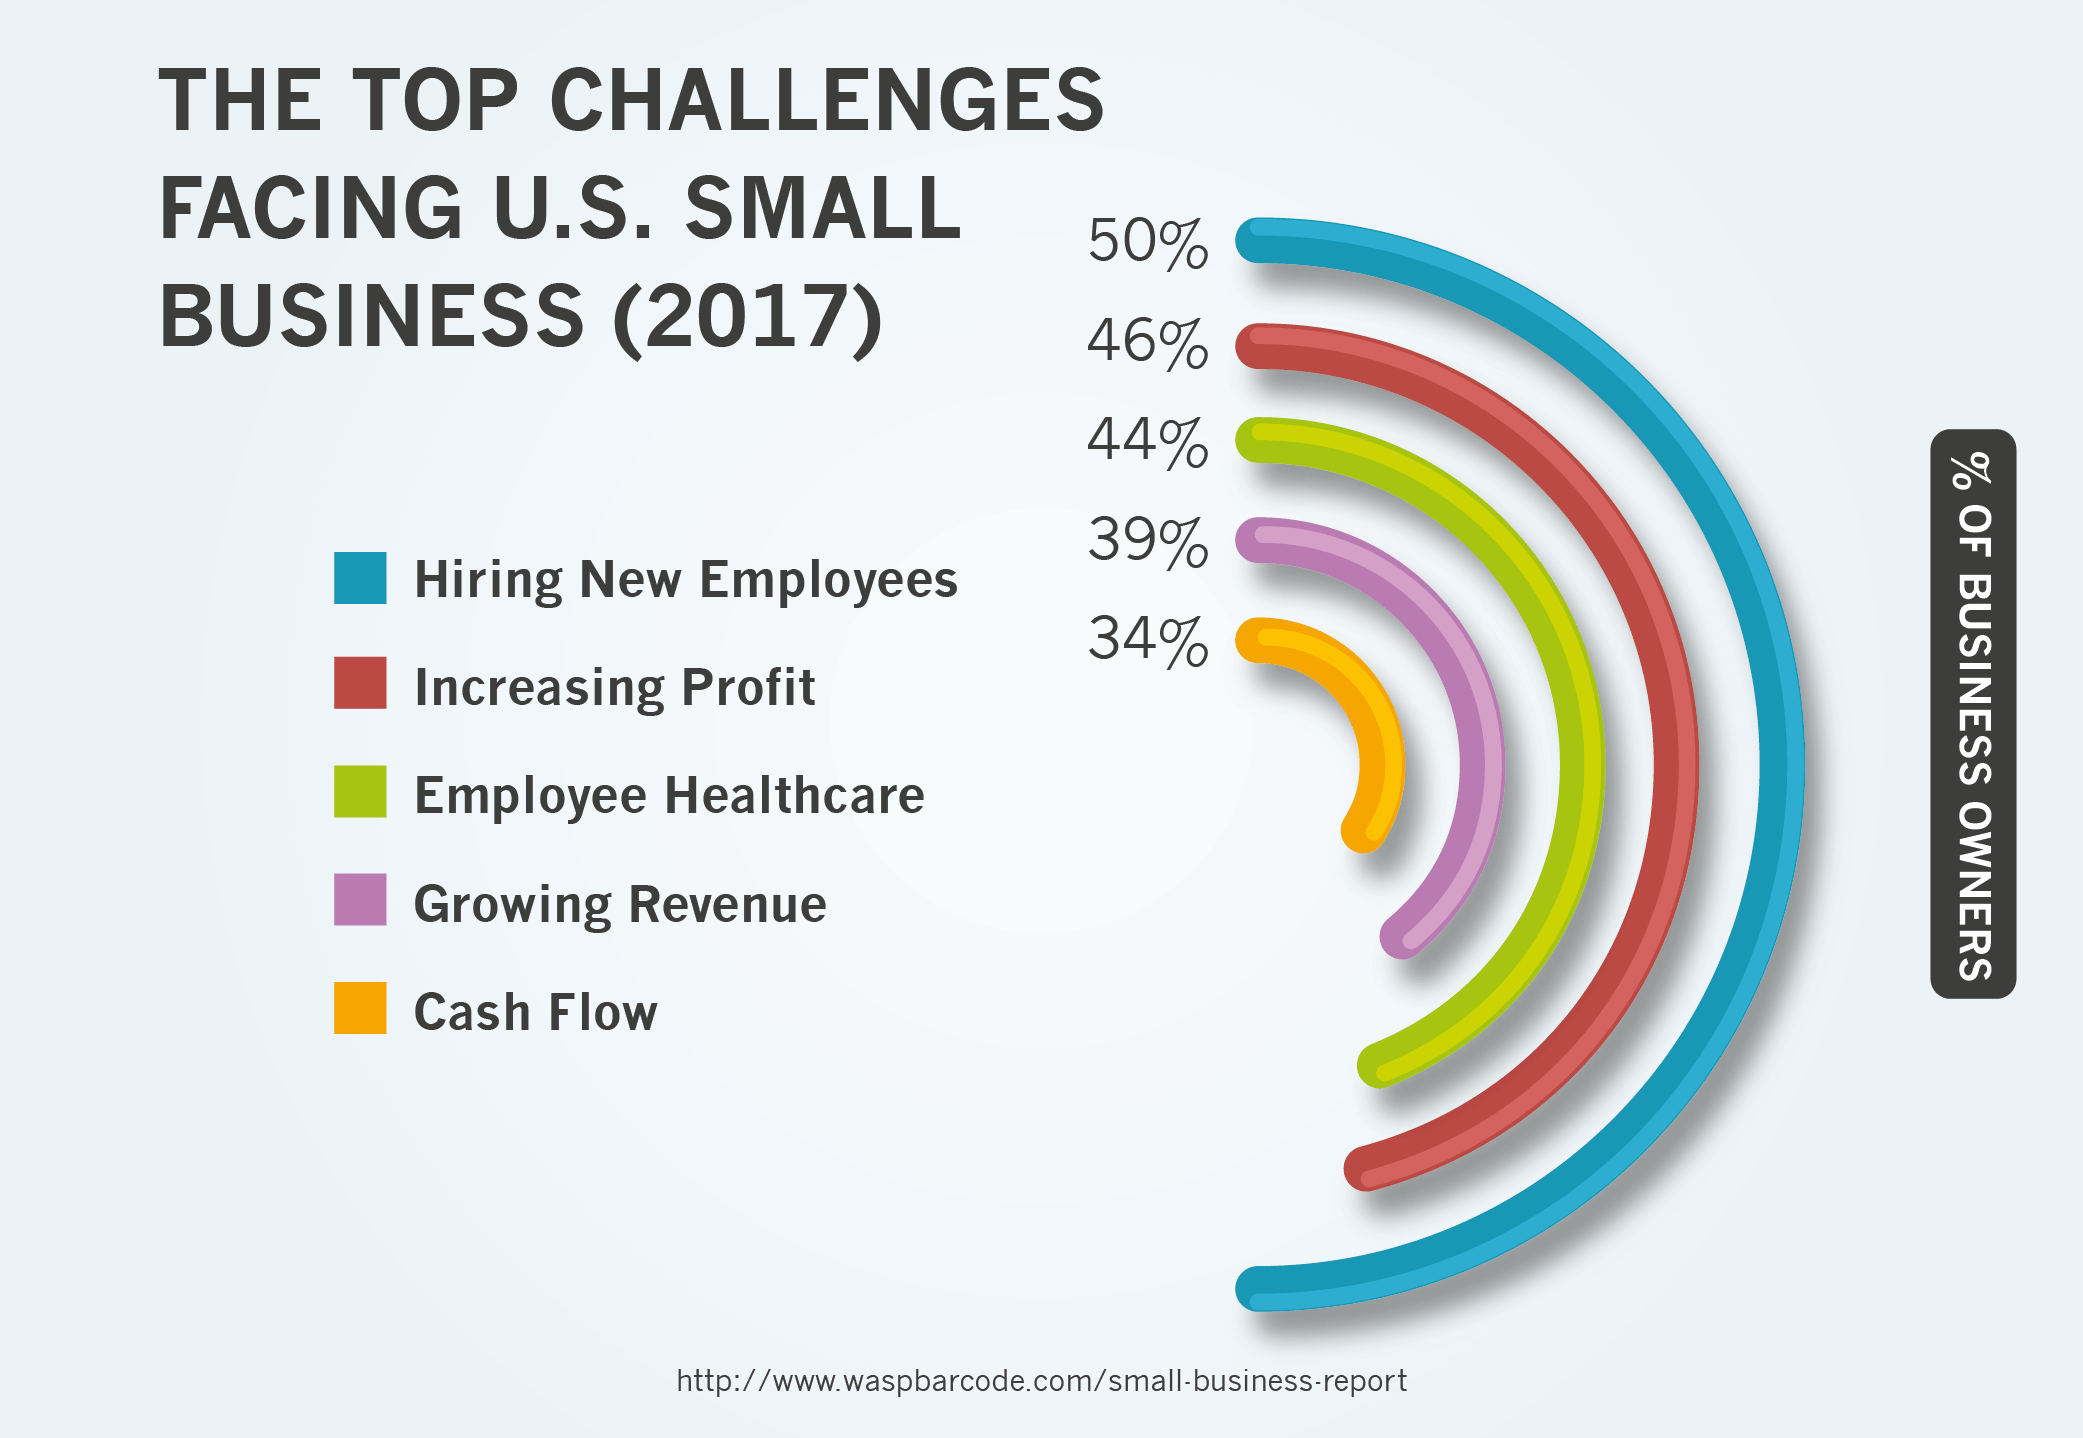 The Top Challenges Facing U.S. Small Business (2017)